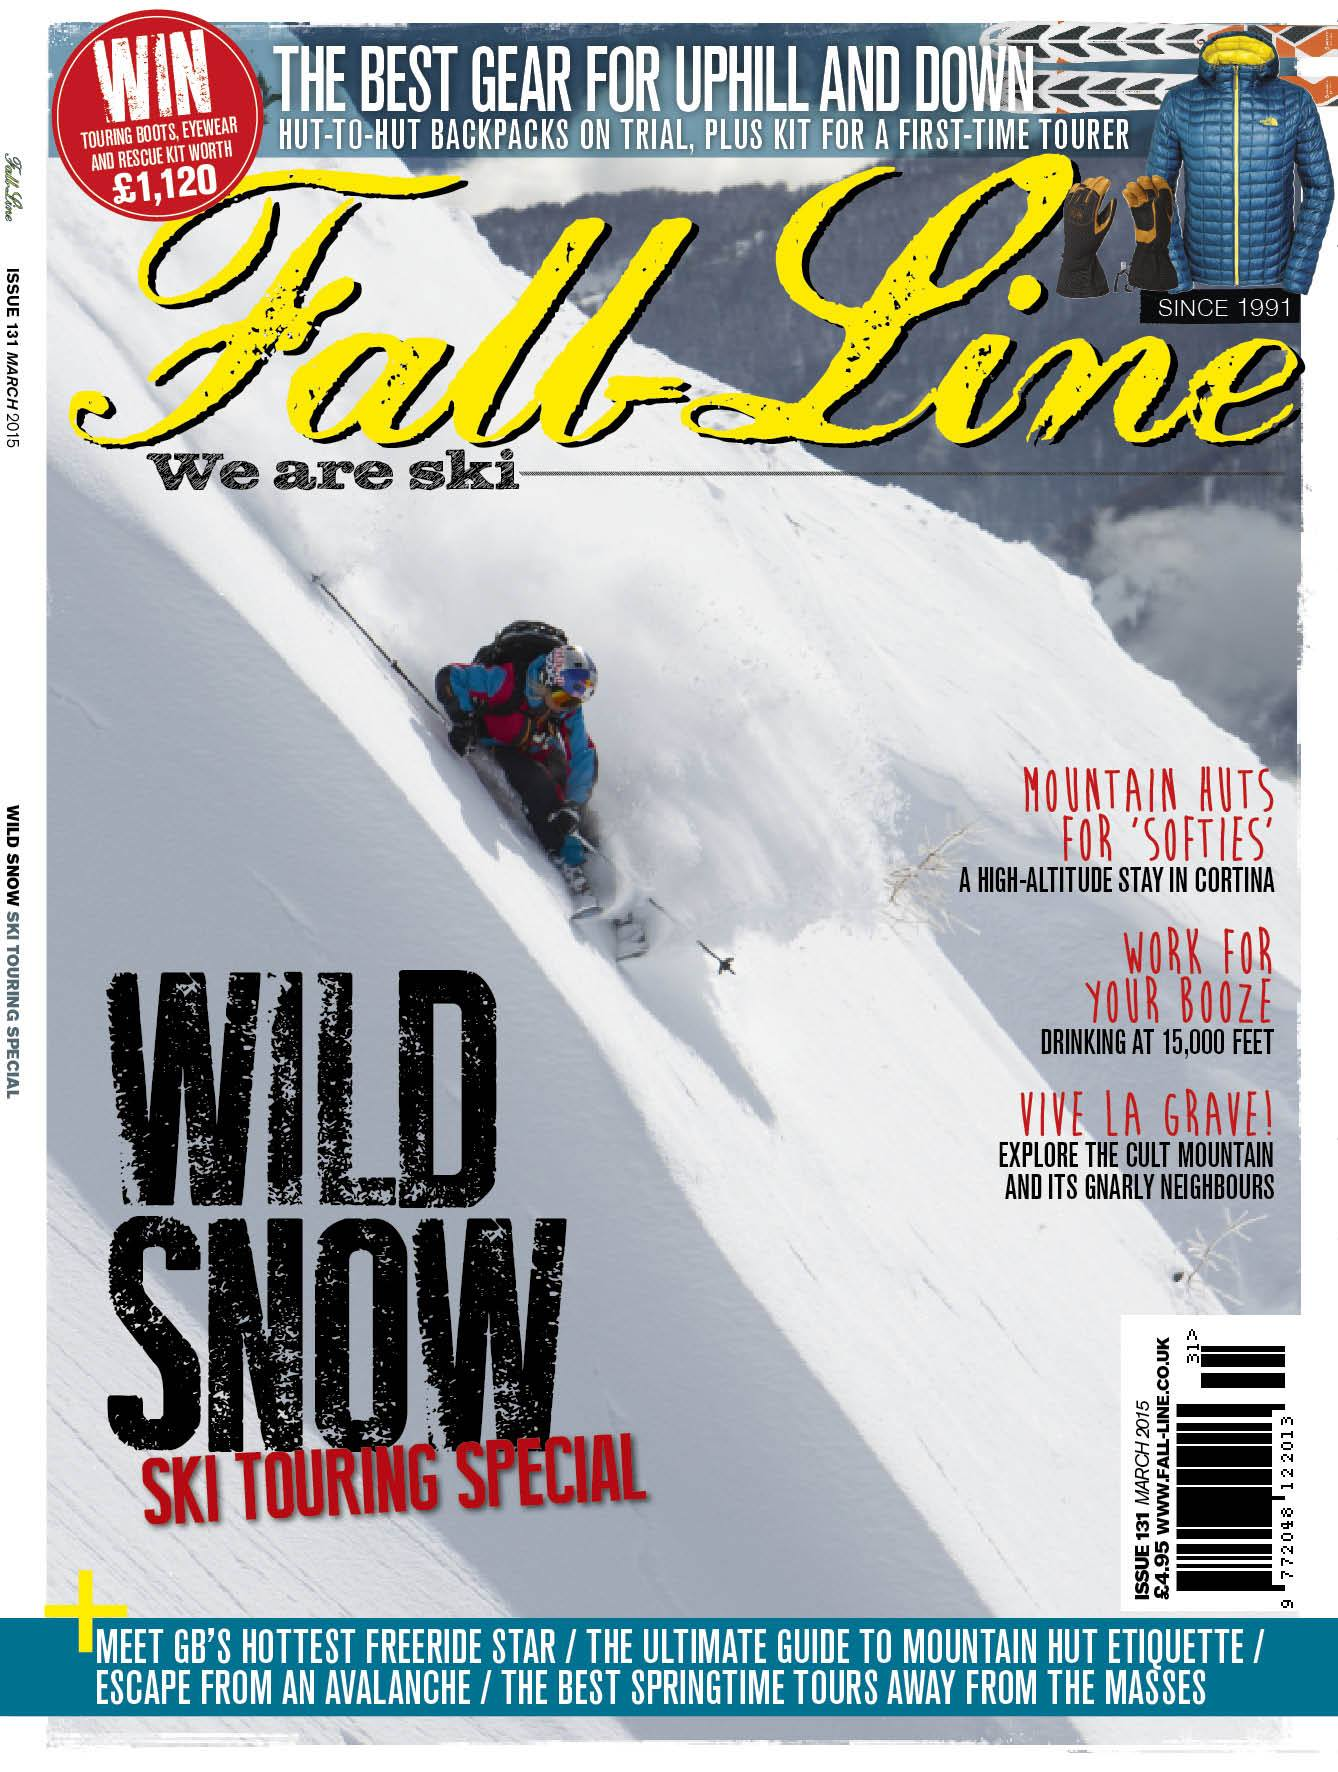 Issue 131 of Fall-Line, featuring la grave and Ian McIntosh. Order a back issue here